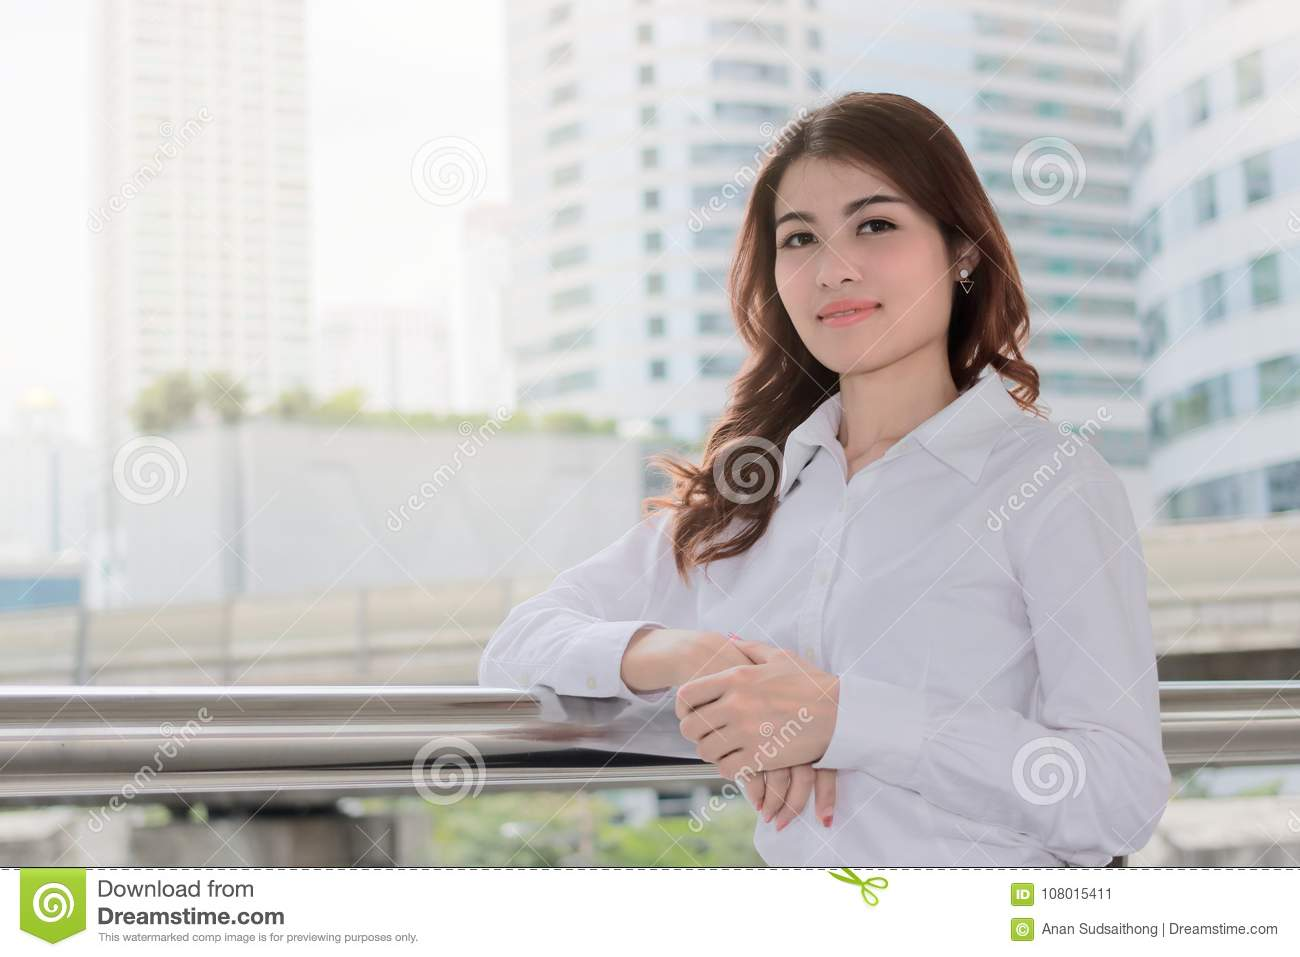 Portrait of attractive young Asian businesswoman looking on camera at urban building with sunshine effect background. Leadership w